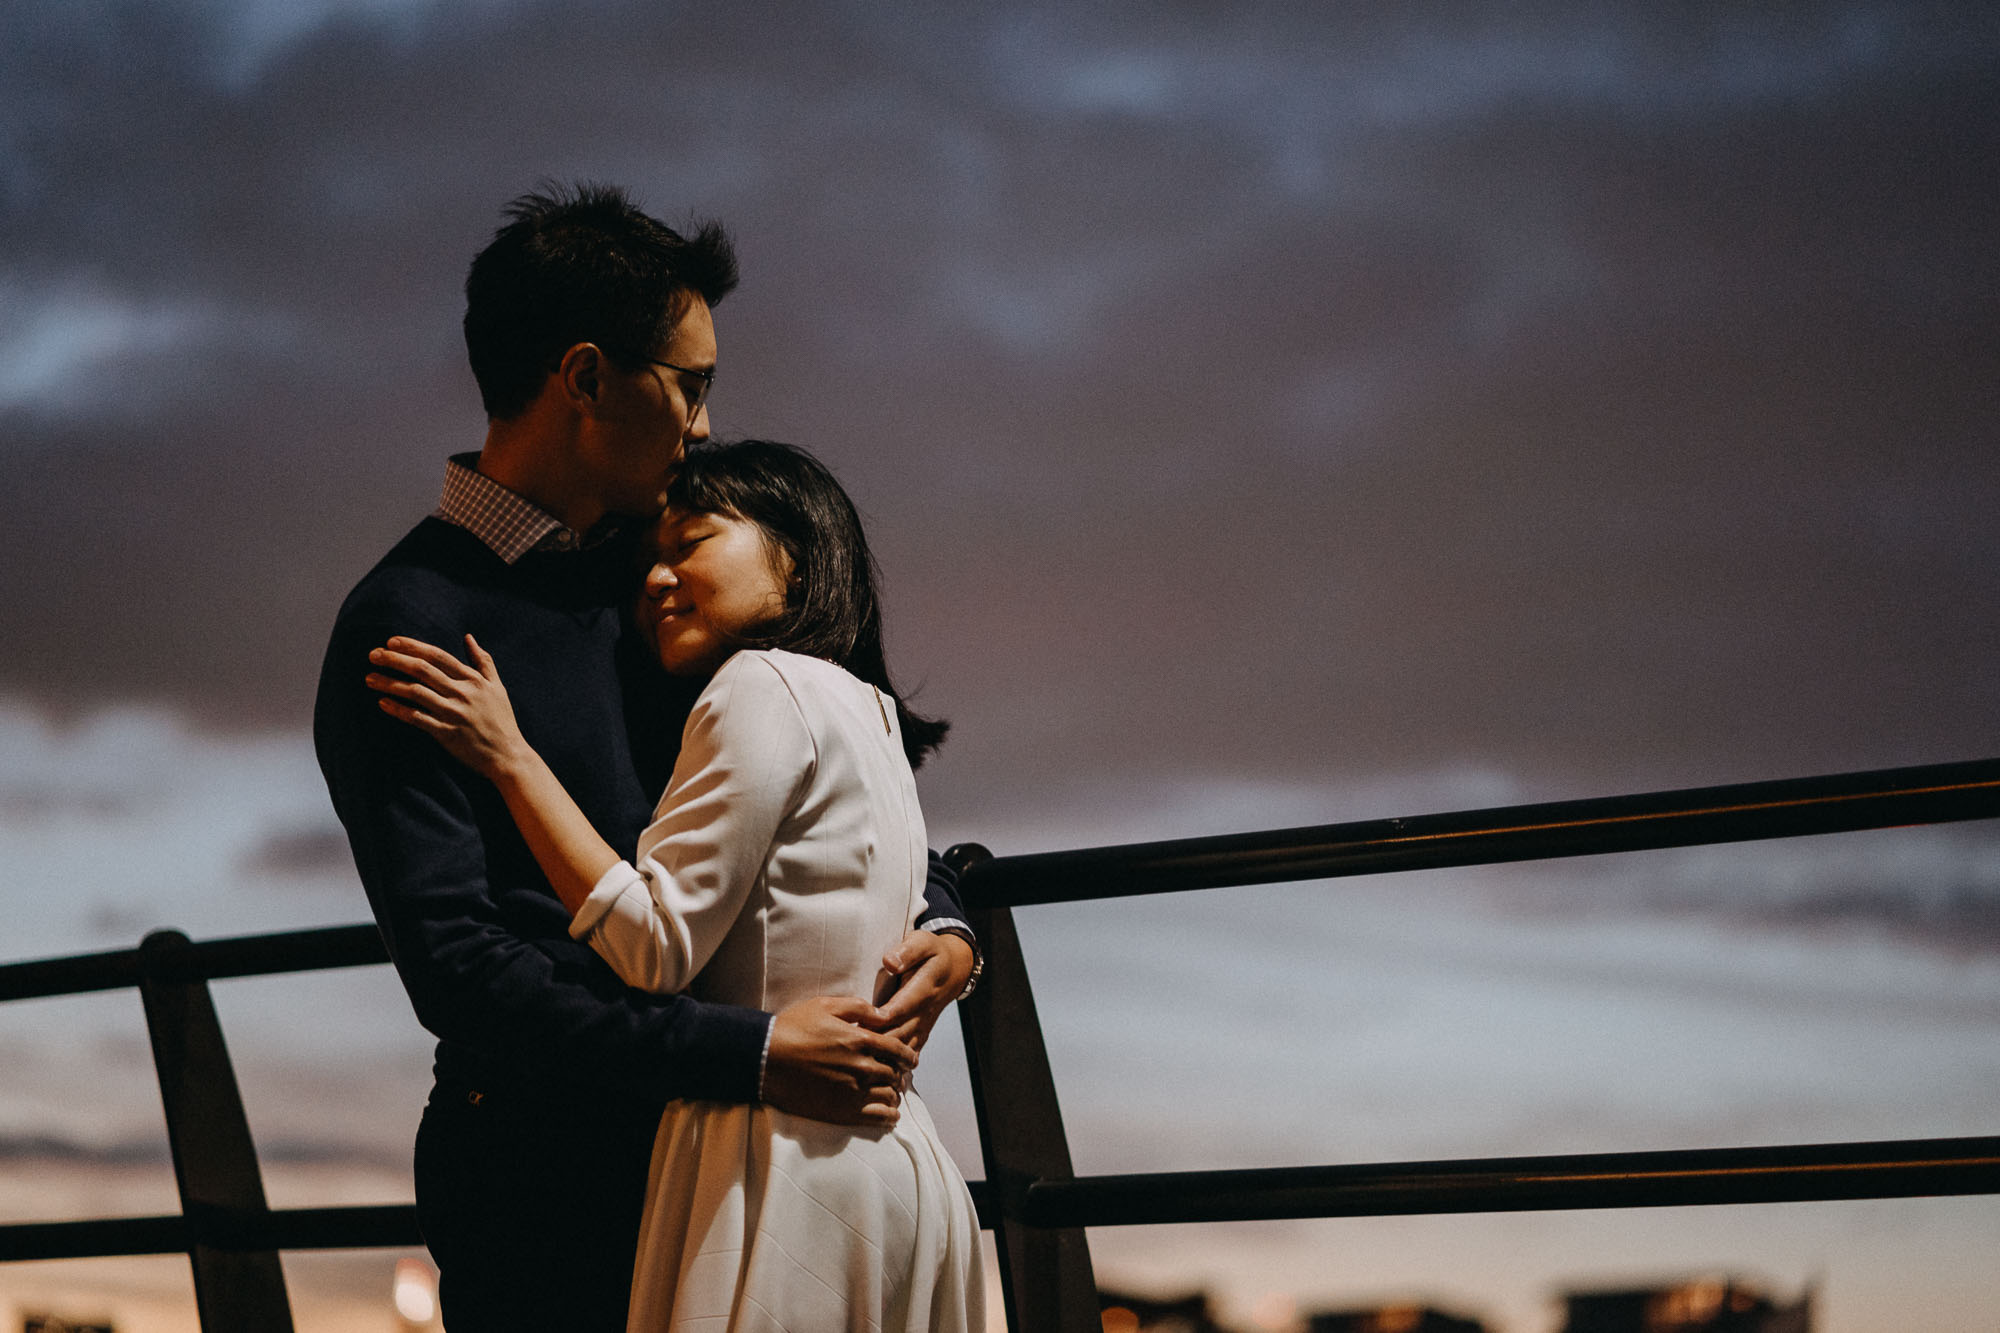 Pre-Wedding Photography in London